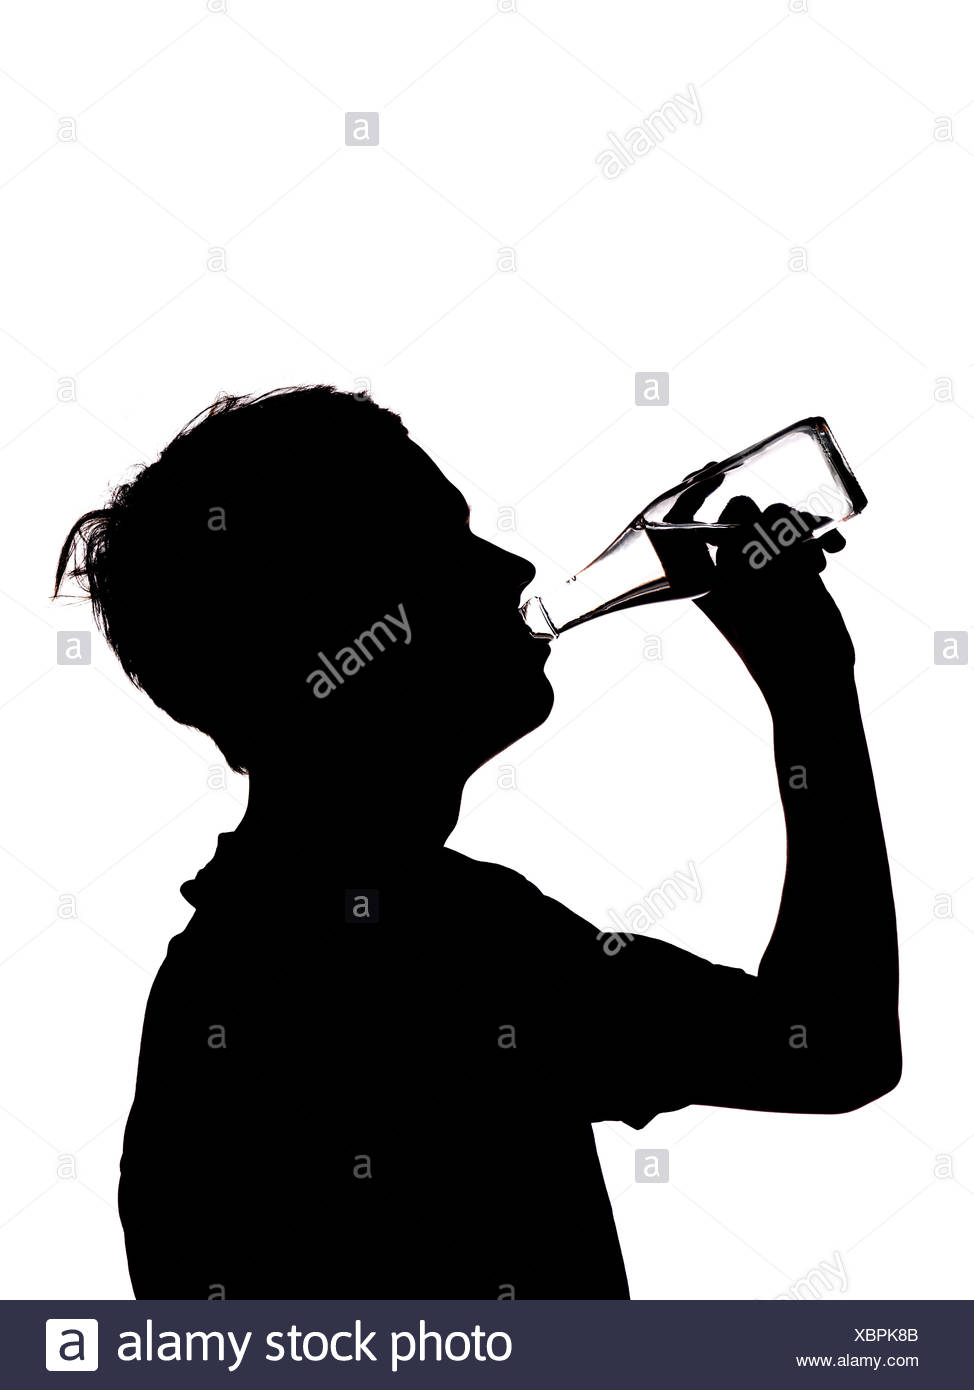 Drinking Silhouette